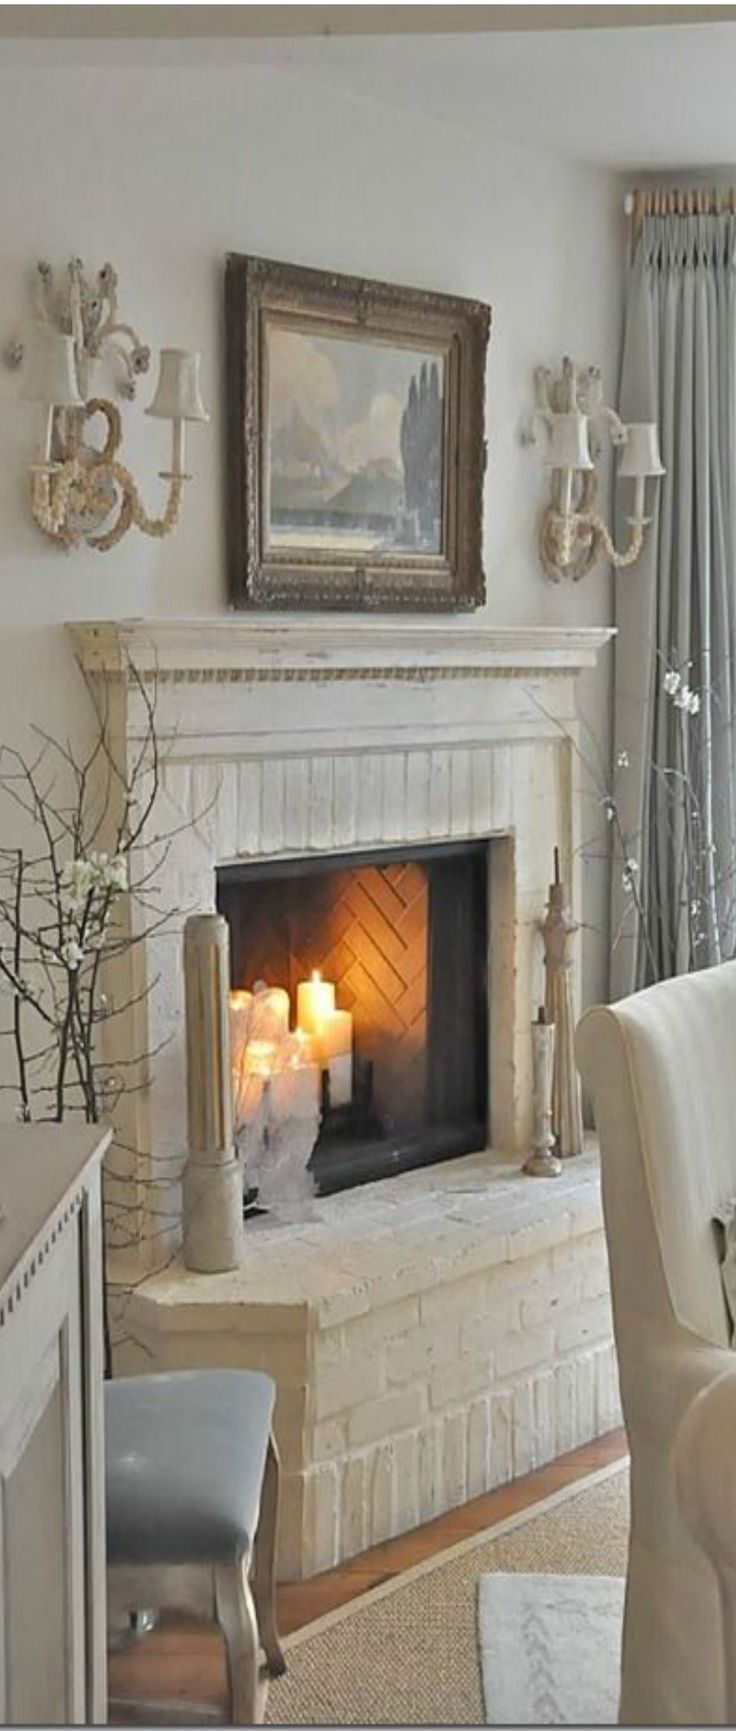 20 best fireplaces images on pinterest fireplace ideas